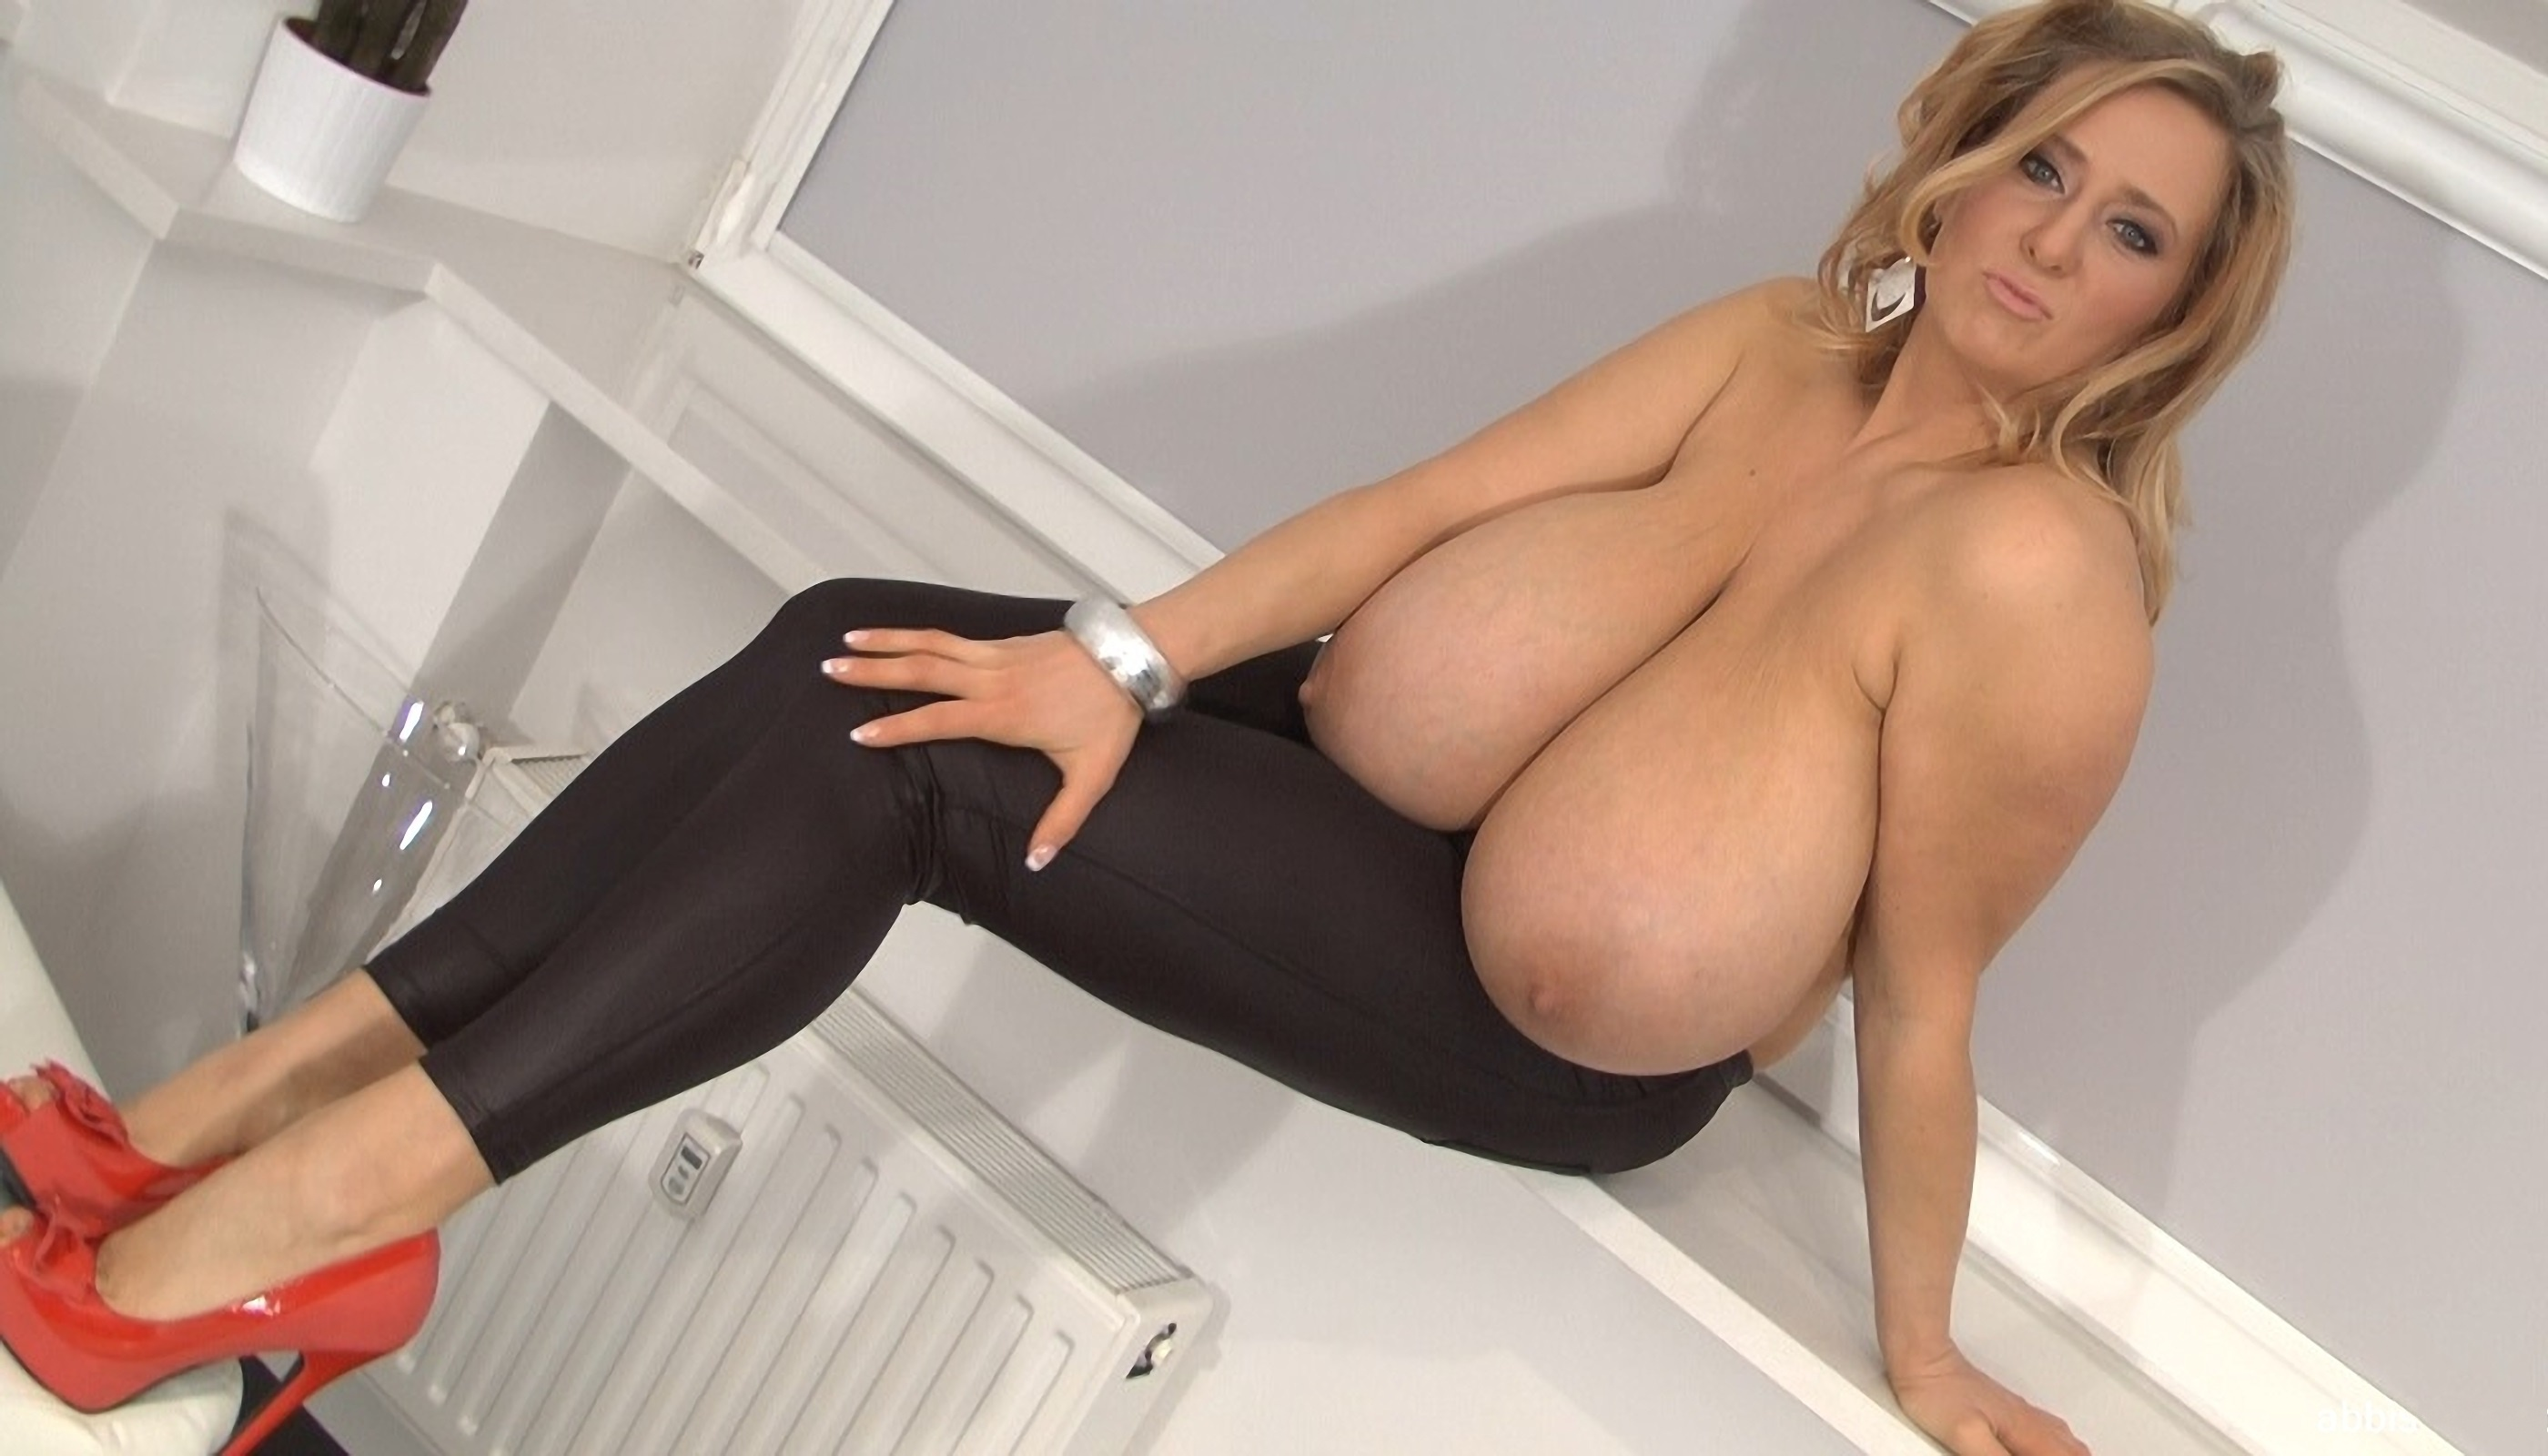 Enormous heavy tits all on a fairly slim frame wow 1